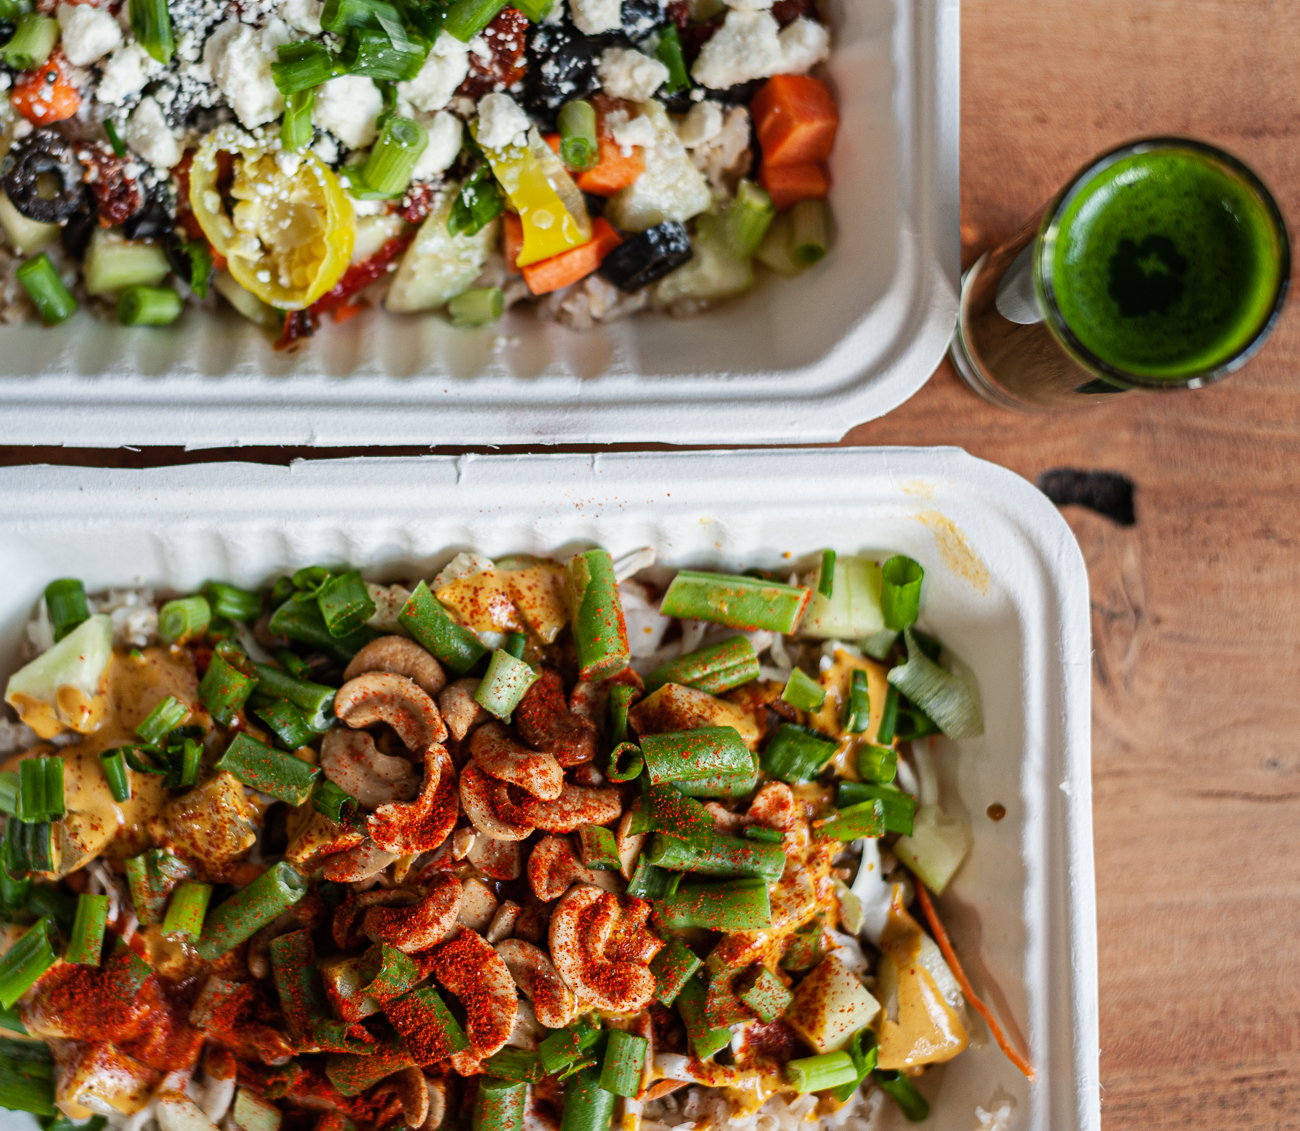 Spicy Thai Bowl, Mediterranean Bowl, and a Wheat Grass Shot / Image: Kellie Coleman // Published: 12.27.20